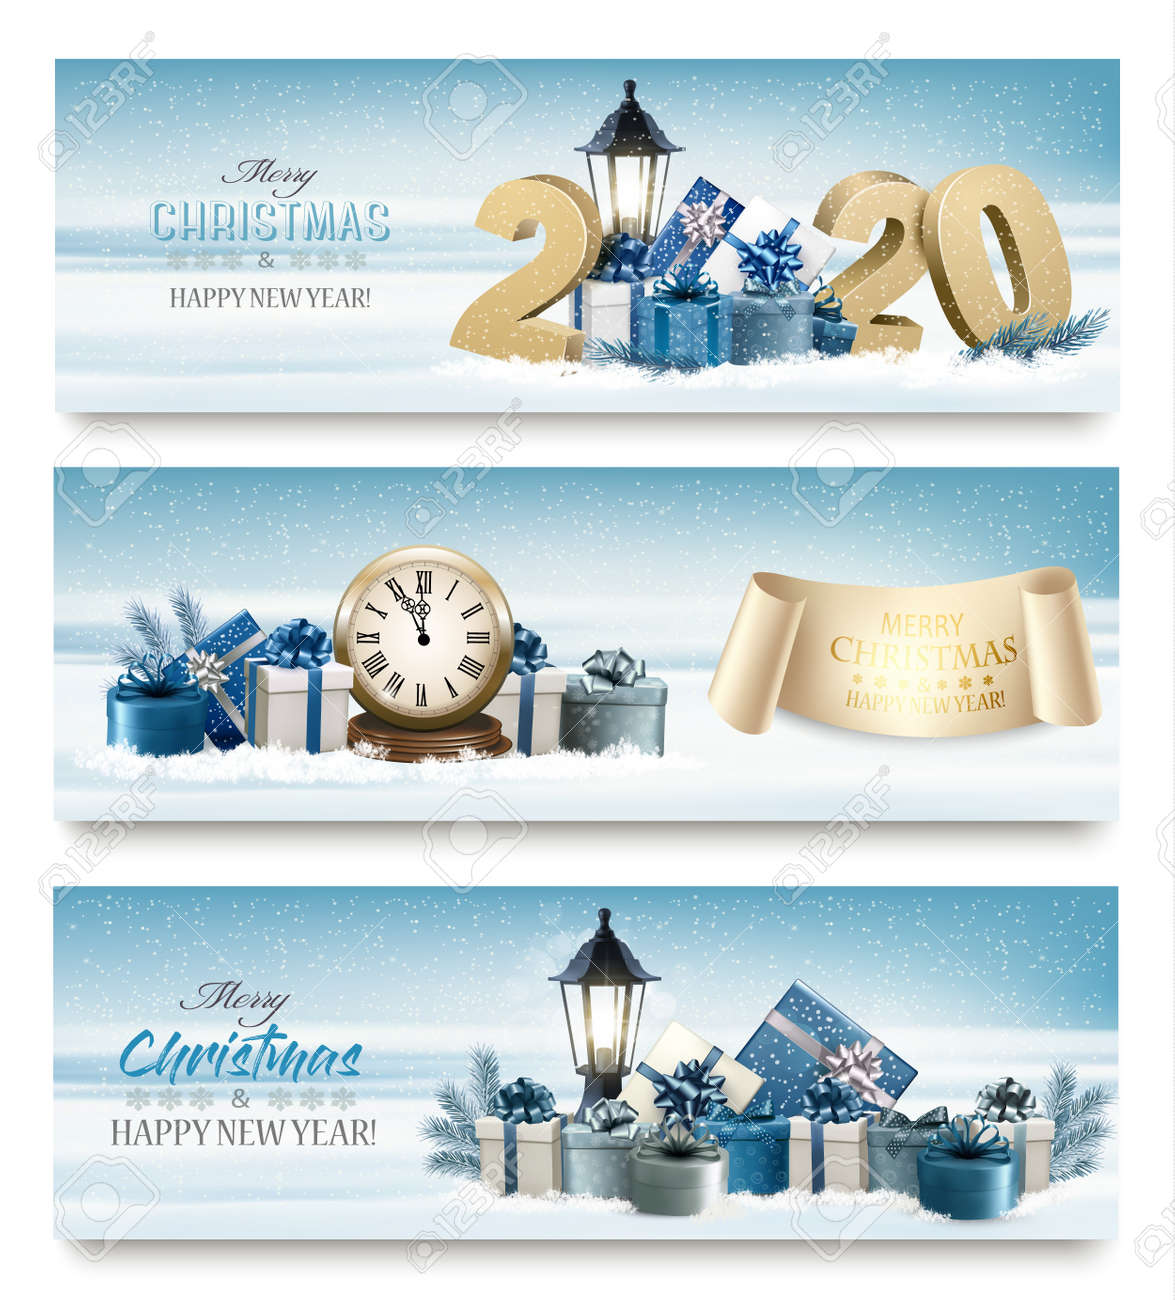 Merry Christmas banners with branches of tree, clock and presents. - 133539649